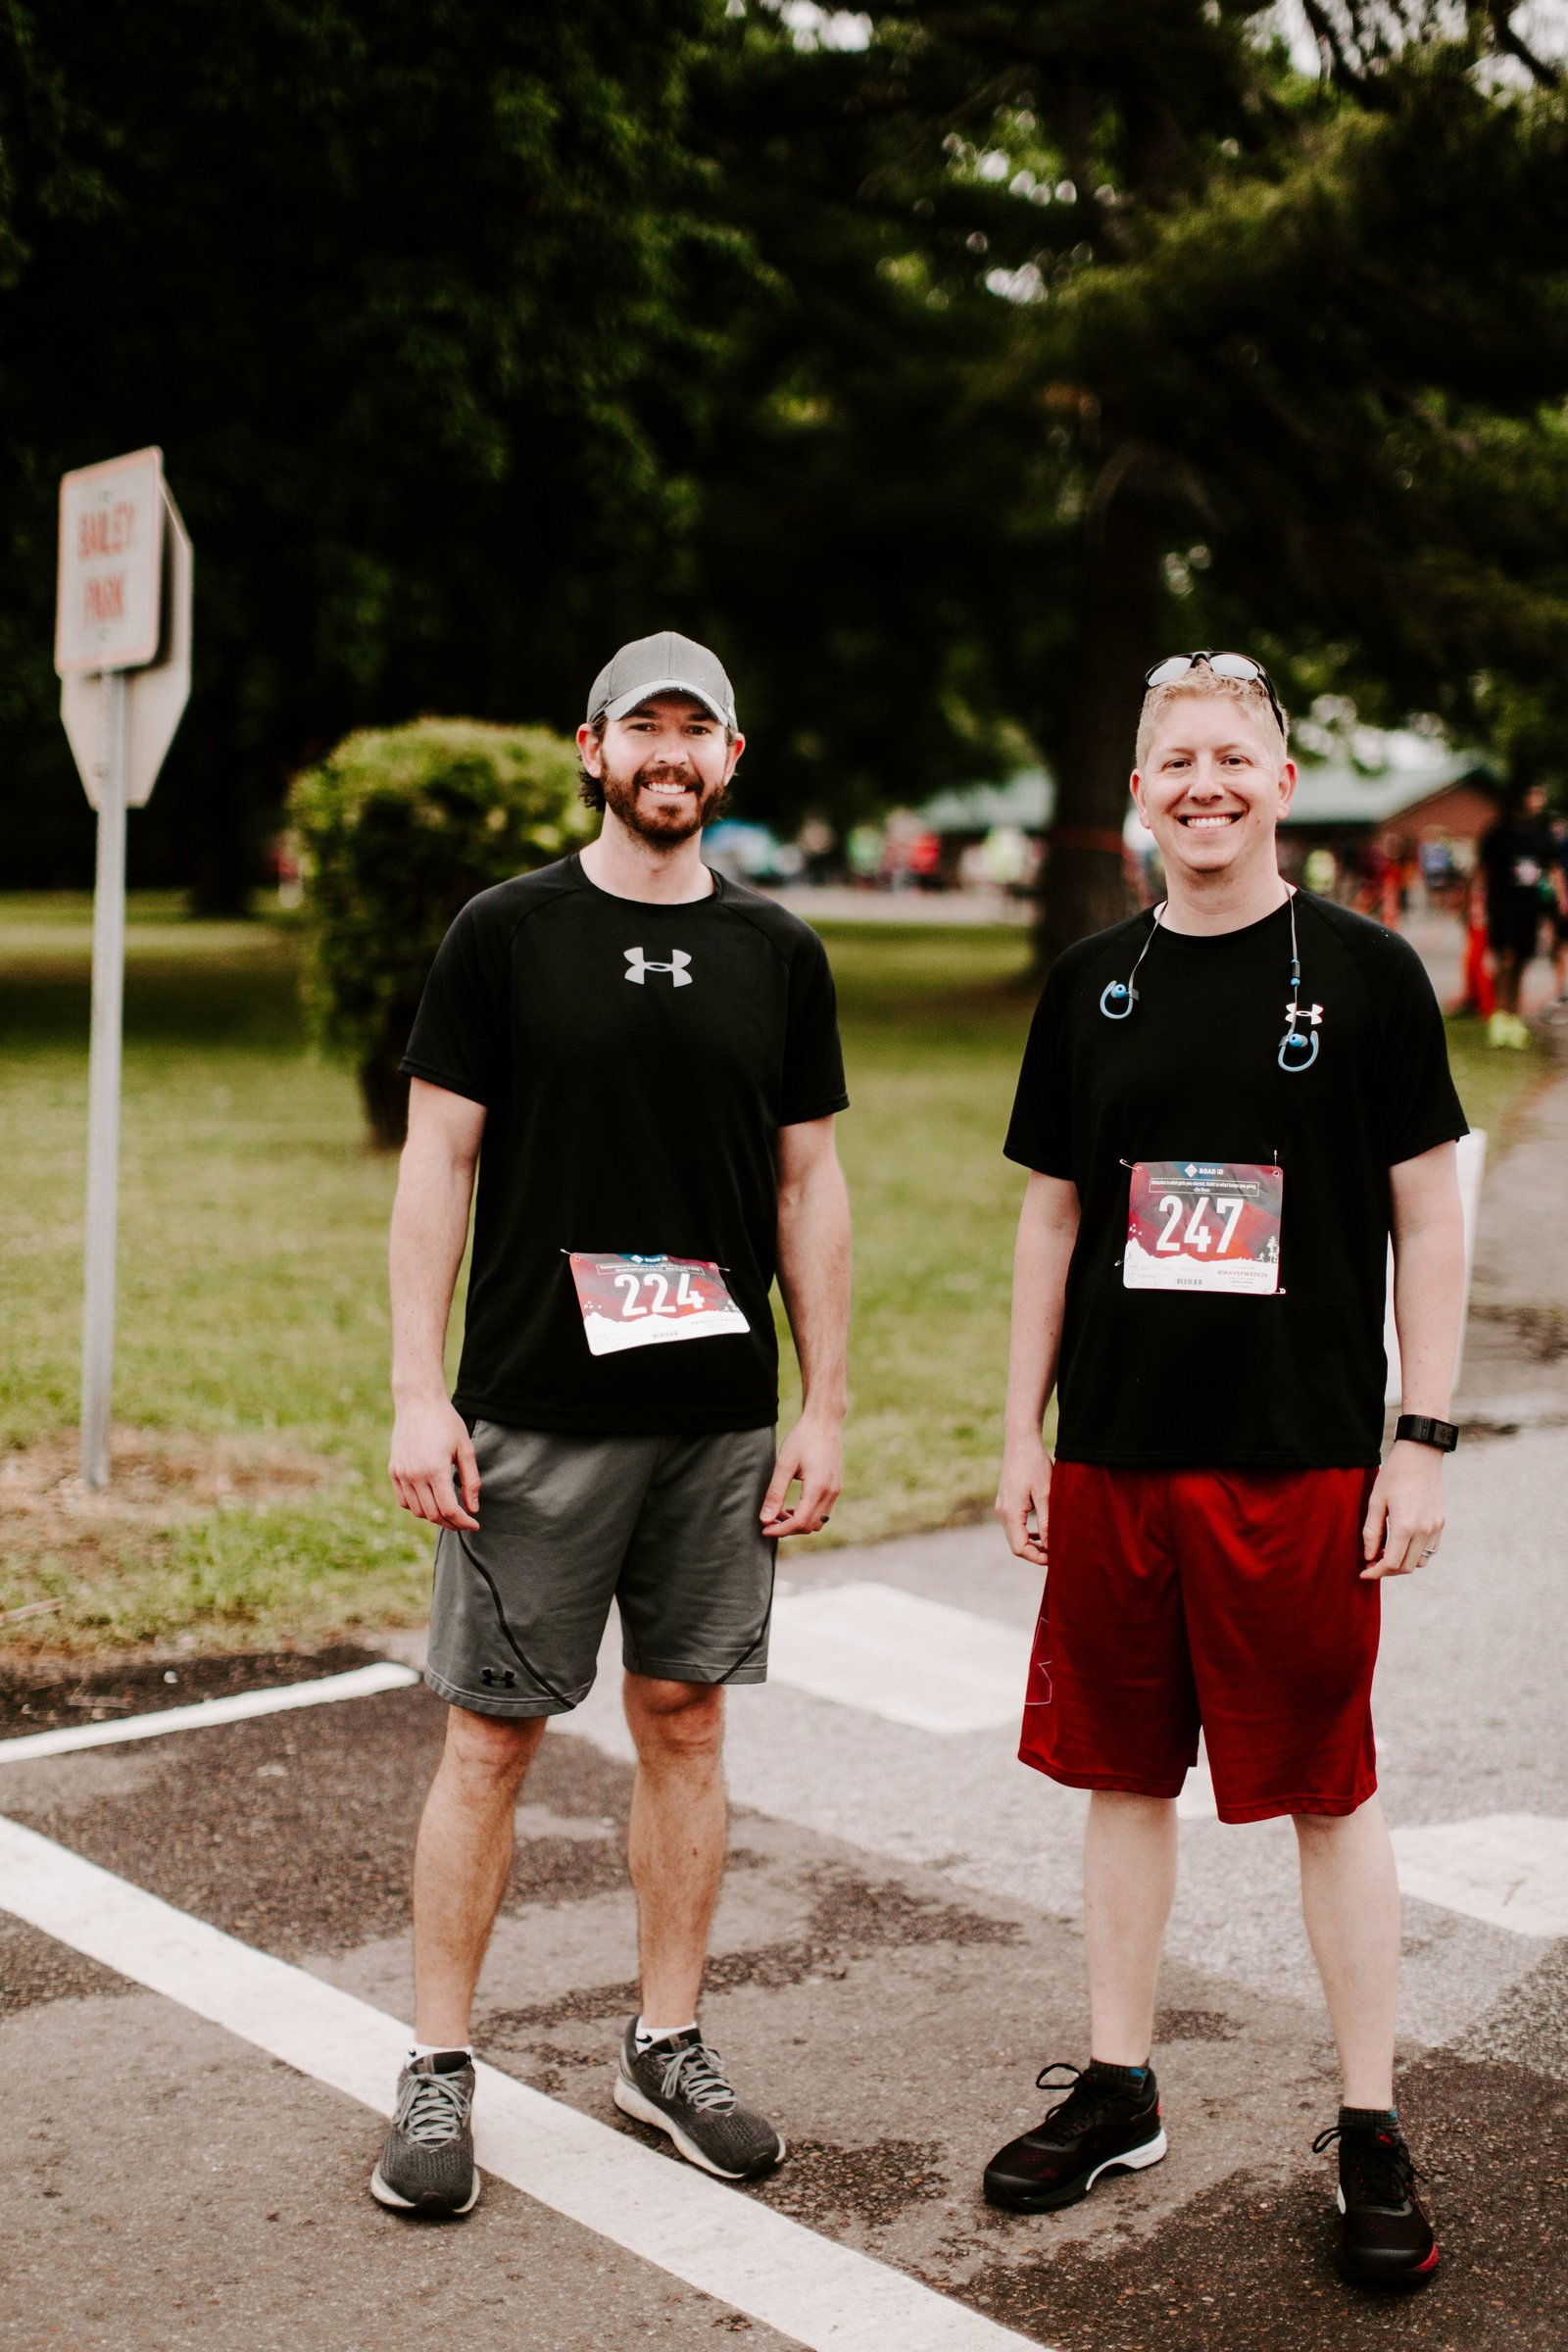 2019 West Tennessee Strawberry Festival - 5k Race - 31